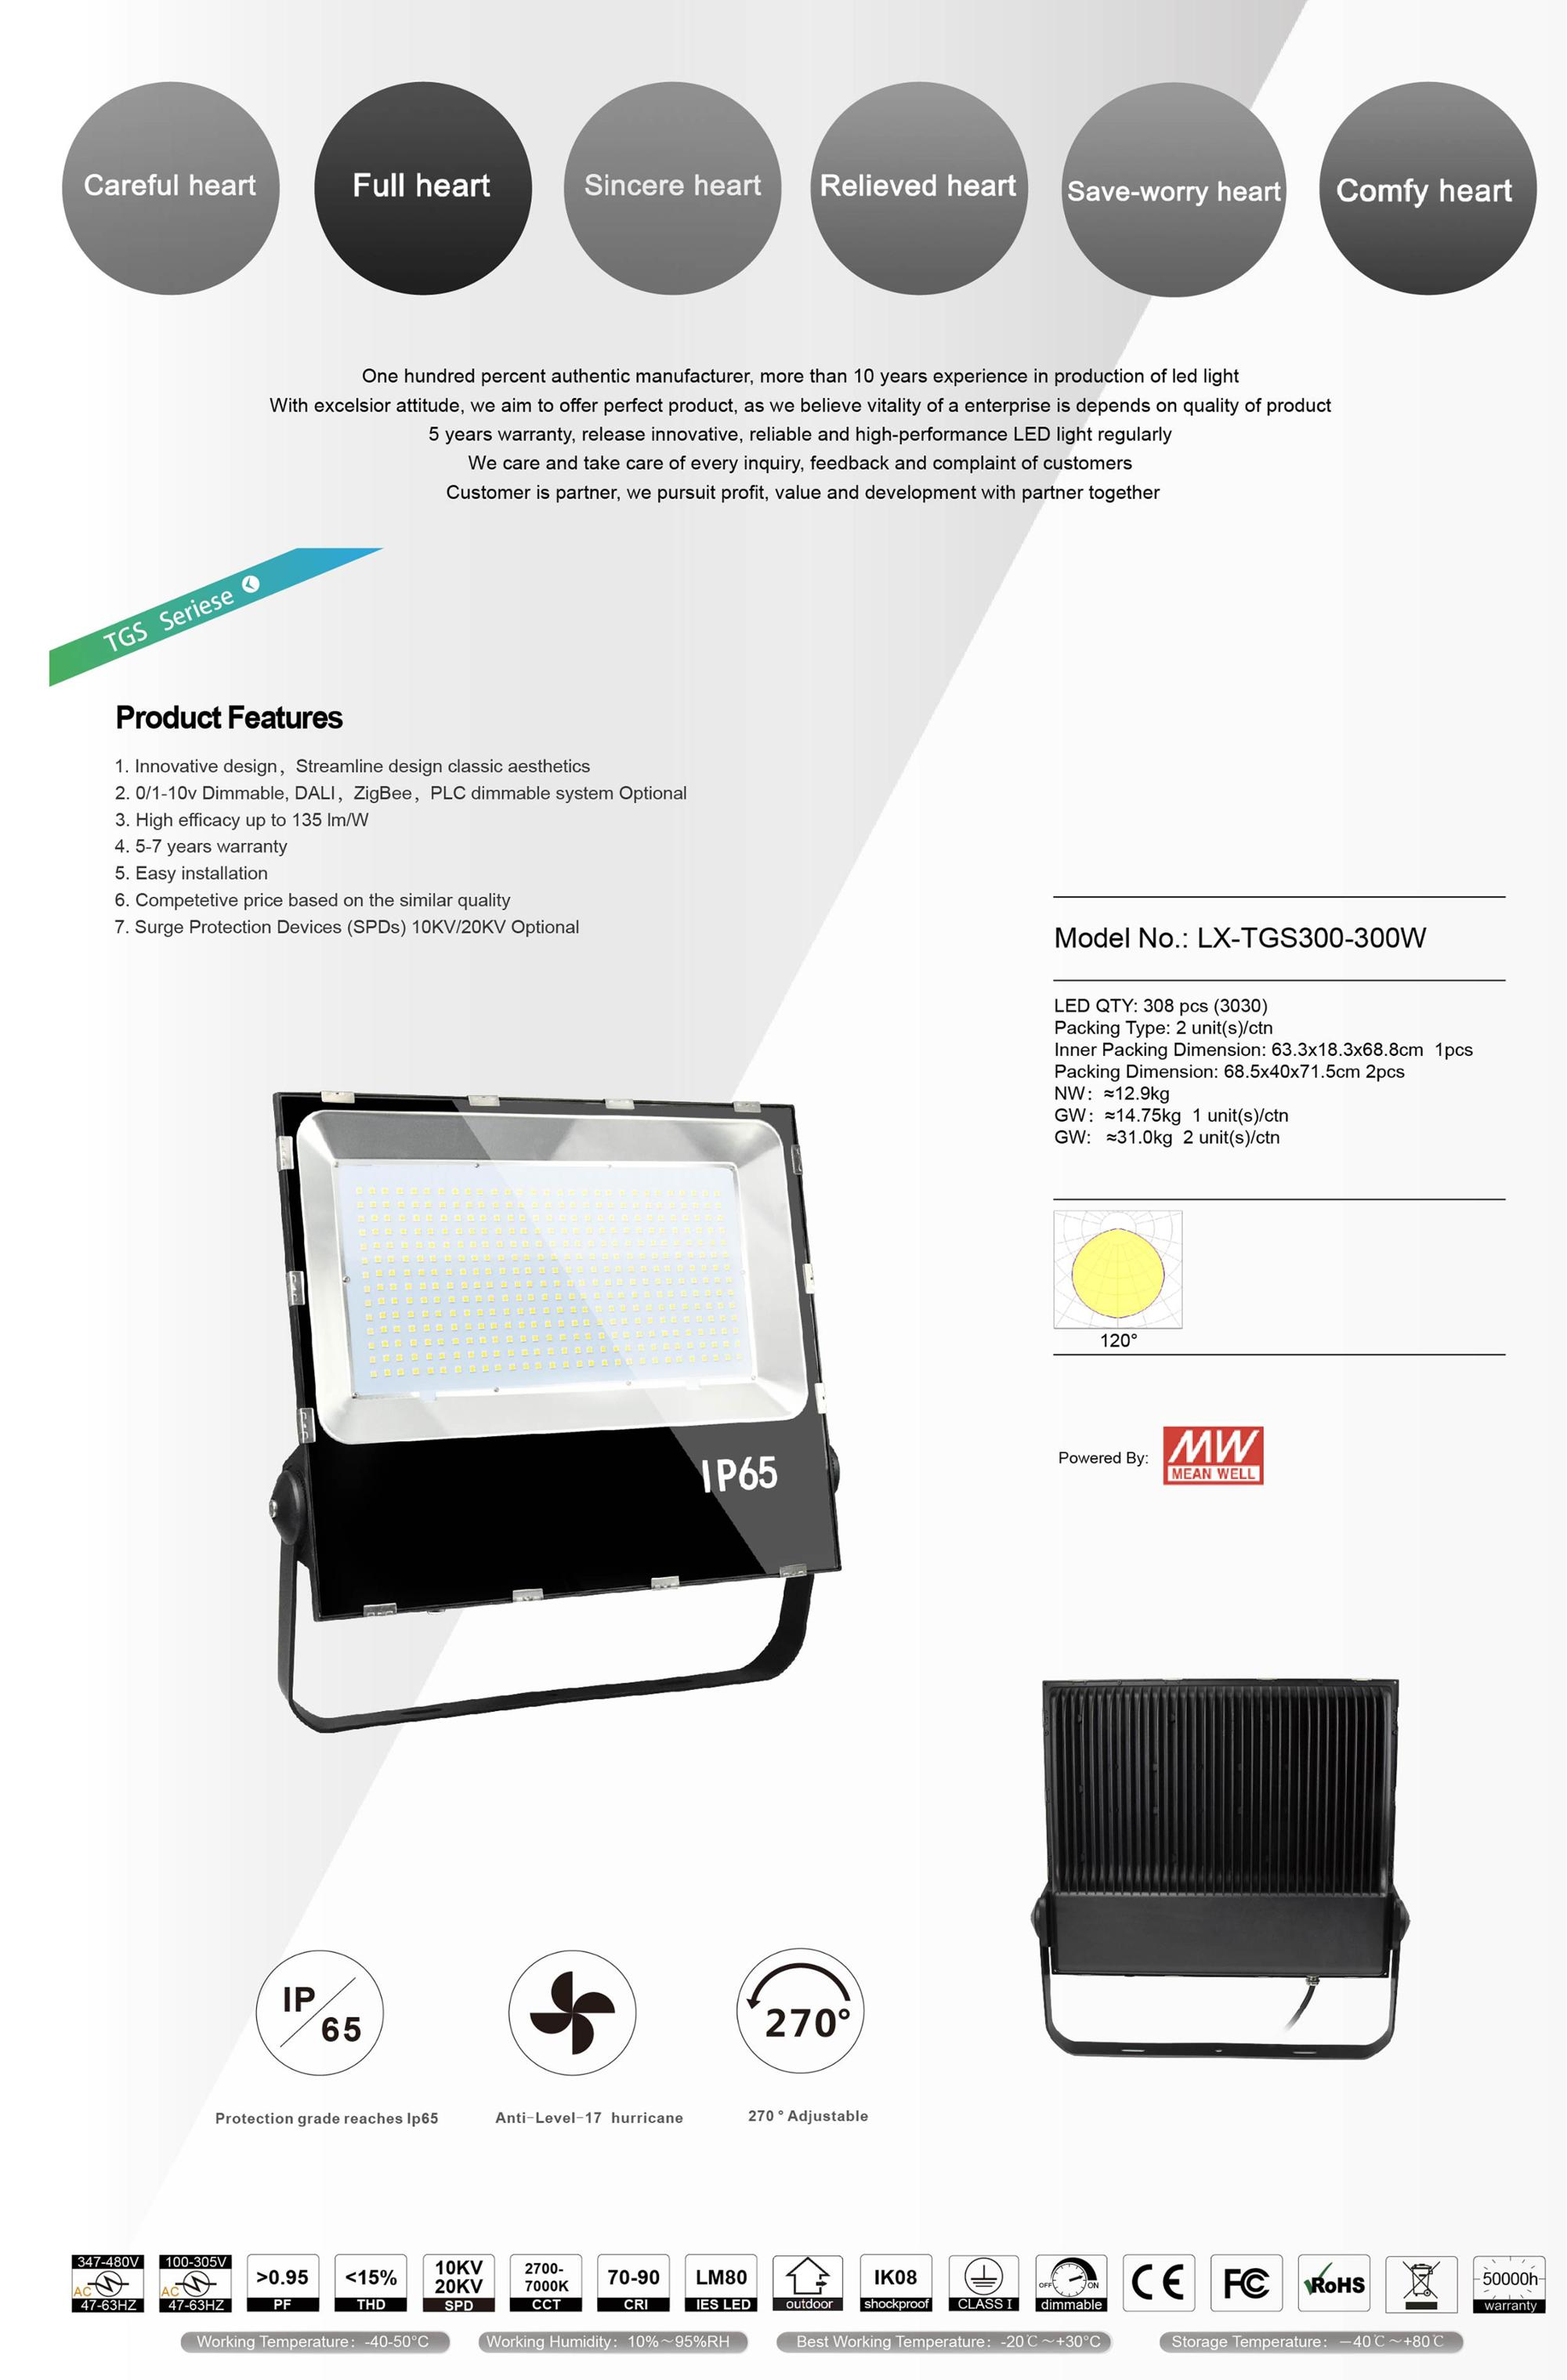 LED SMD3030 waterproof flood light with high Luminaire efficacy